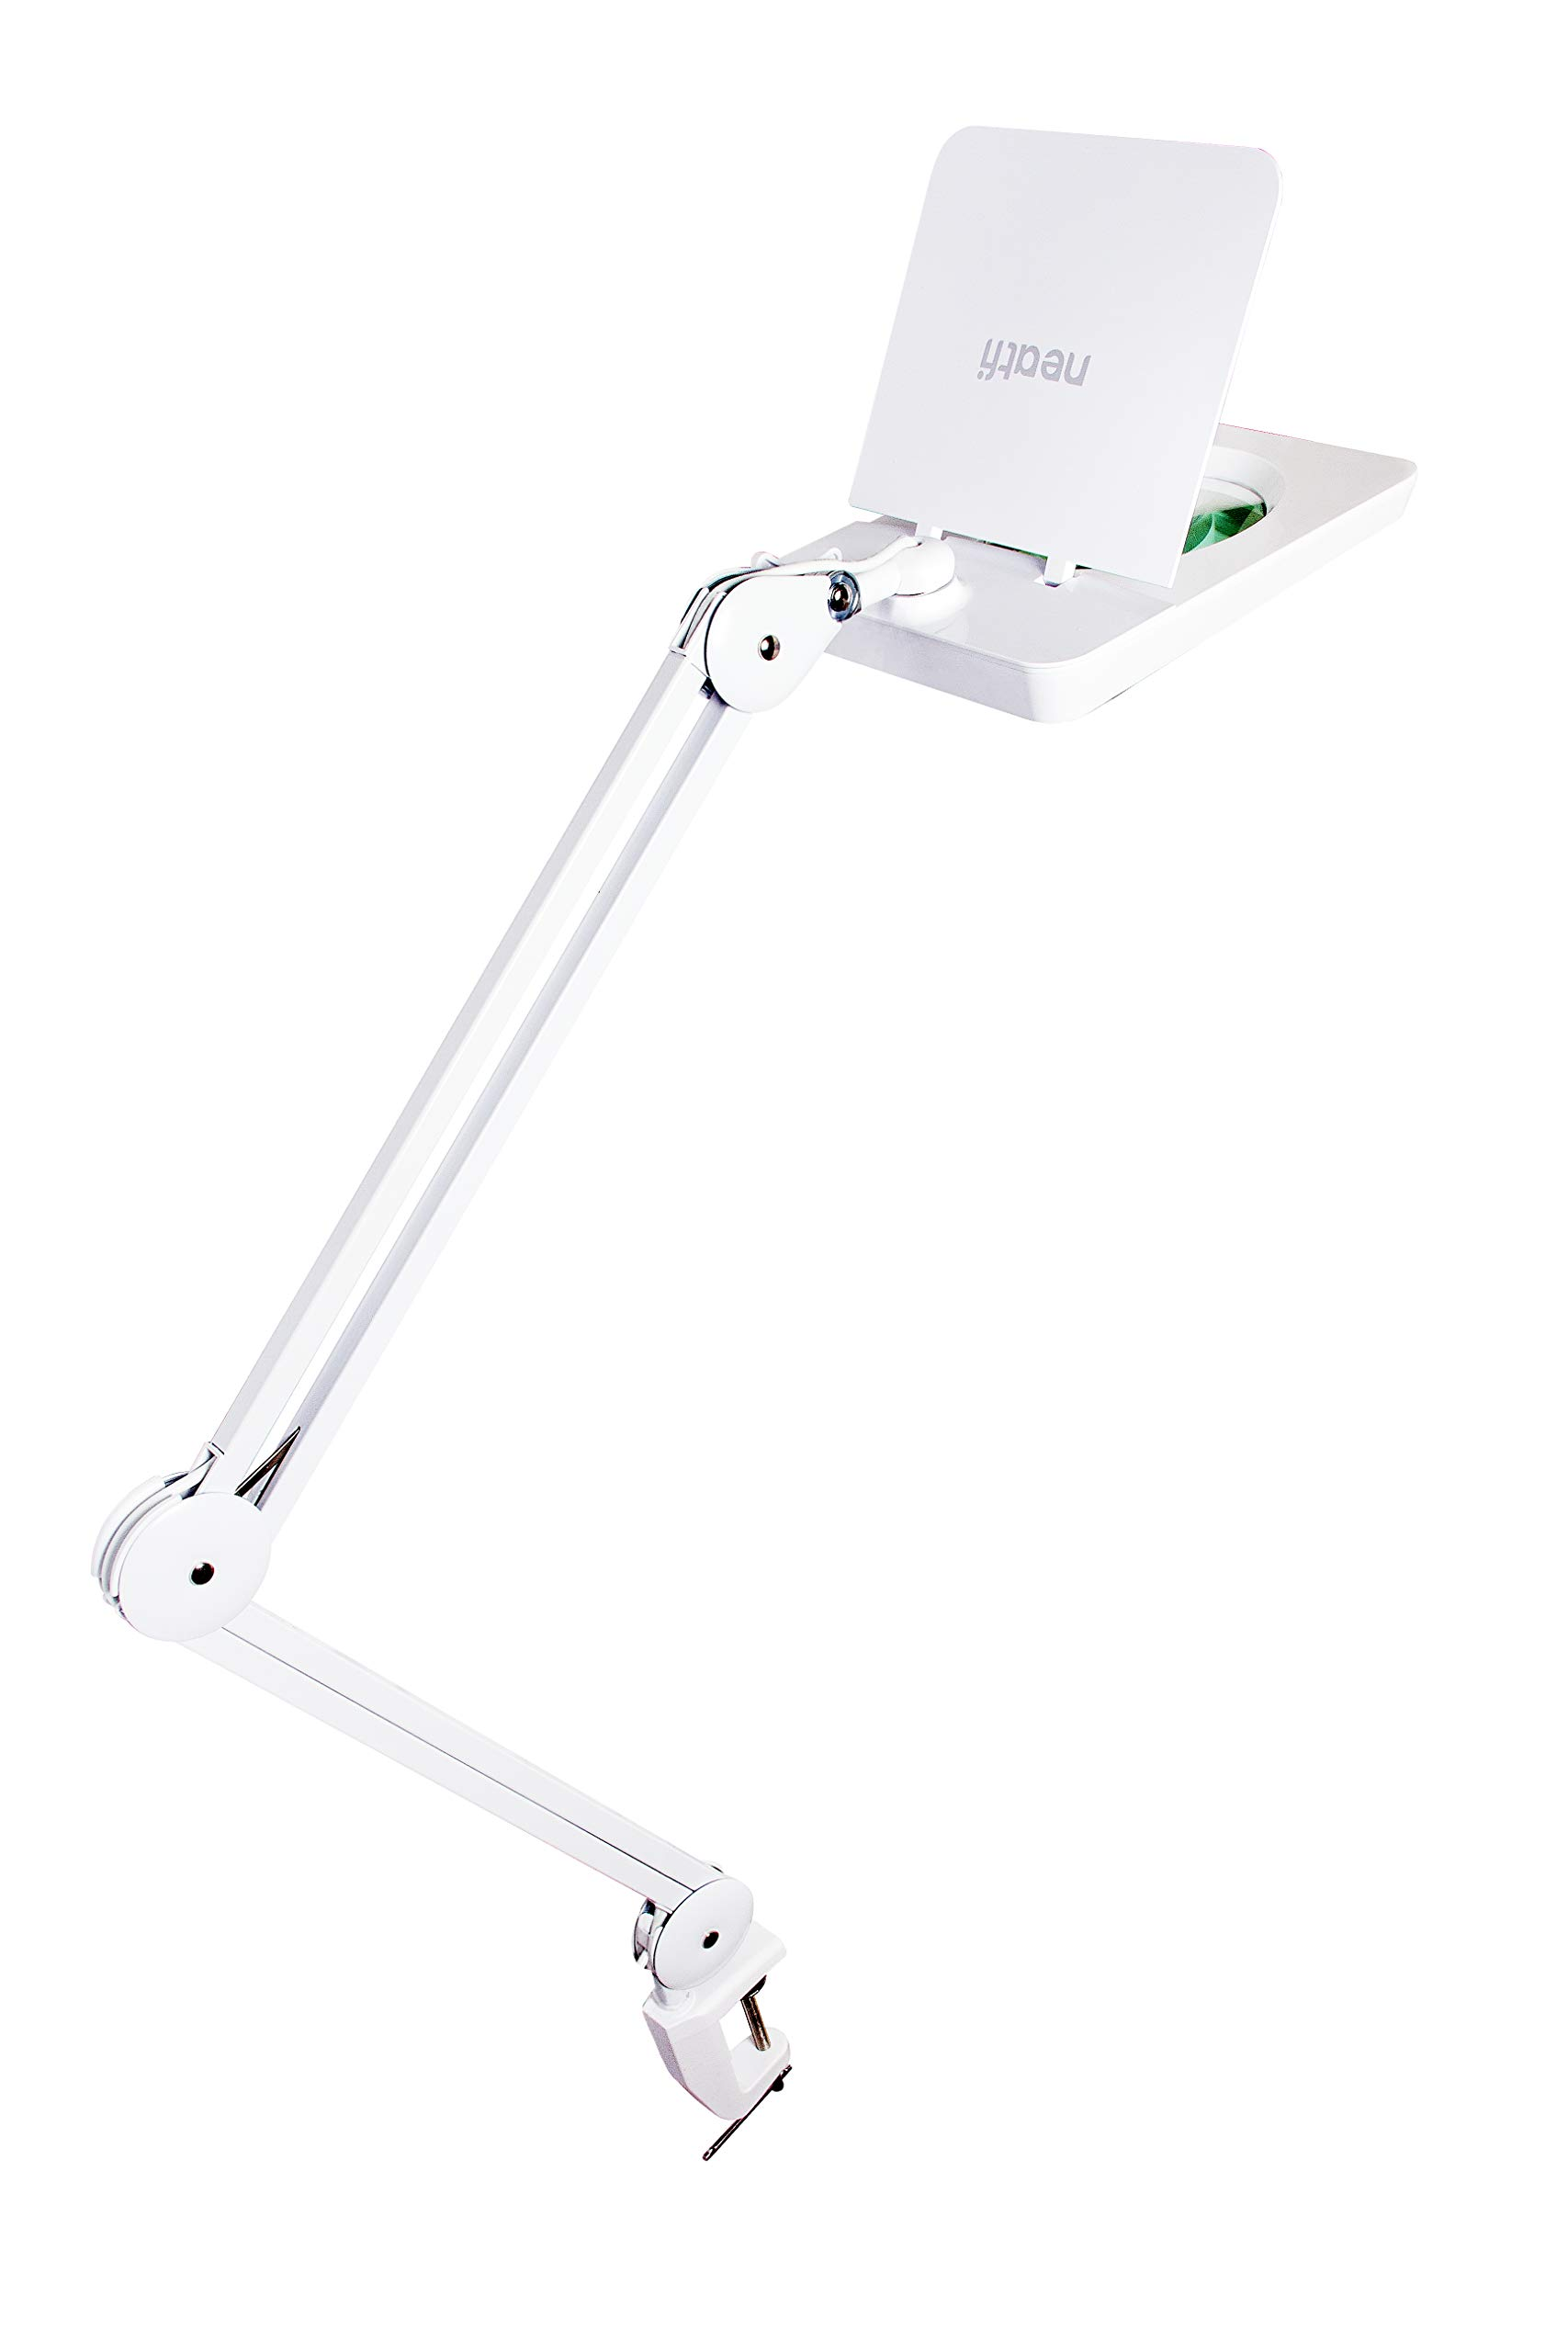 (New Model) Neatfi SS 1,200 Lumens Super LED Magnifying Lamp with Clamp, Square Shaped Mag Lamp, Dimmable, Hands Free, Glare Free, Dimmable, 14W, 60 Pcs SMD LED, 5 Diopter, 5 Inches Diameter Lens